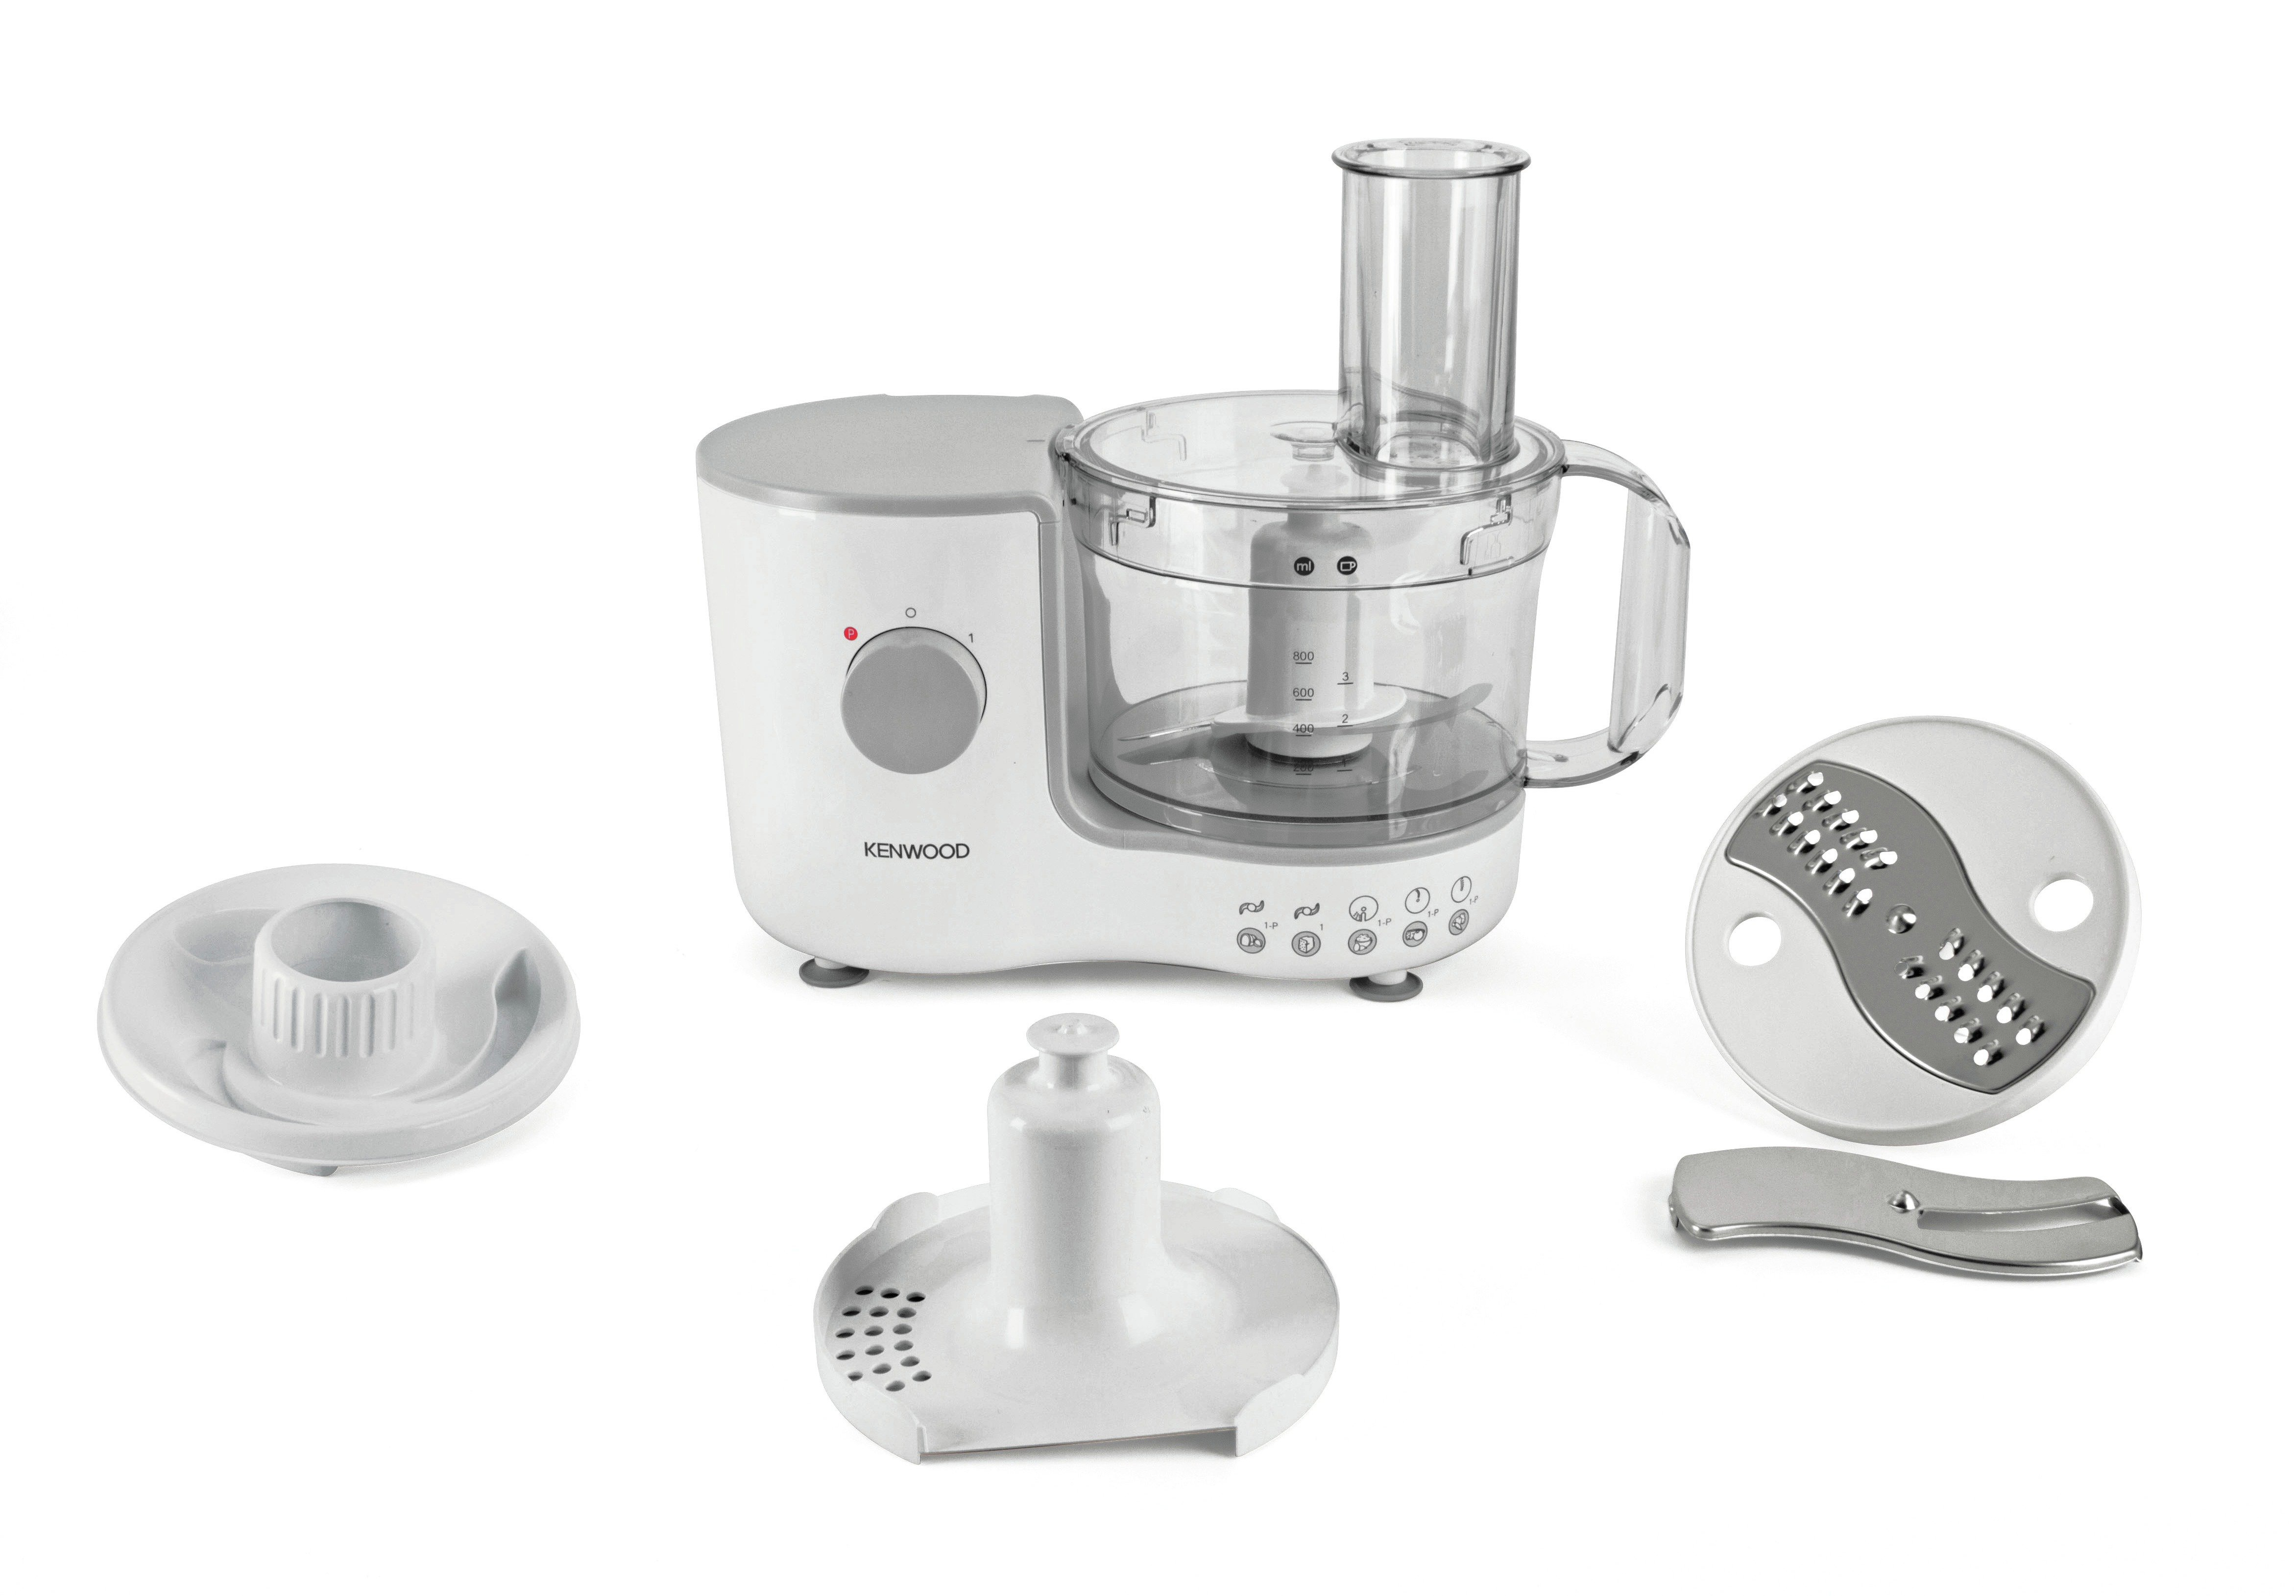 Asda Kenwood Food Processor